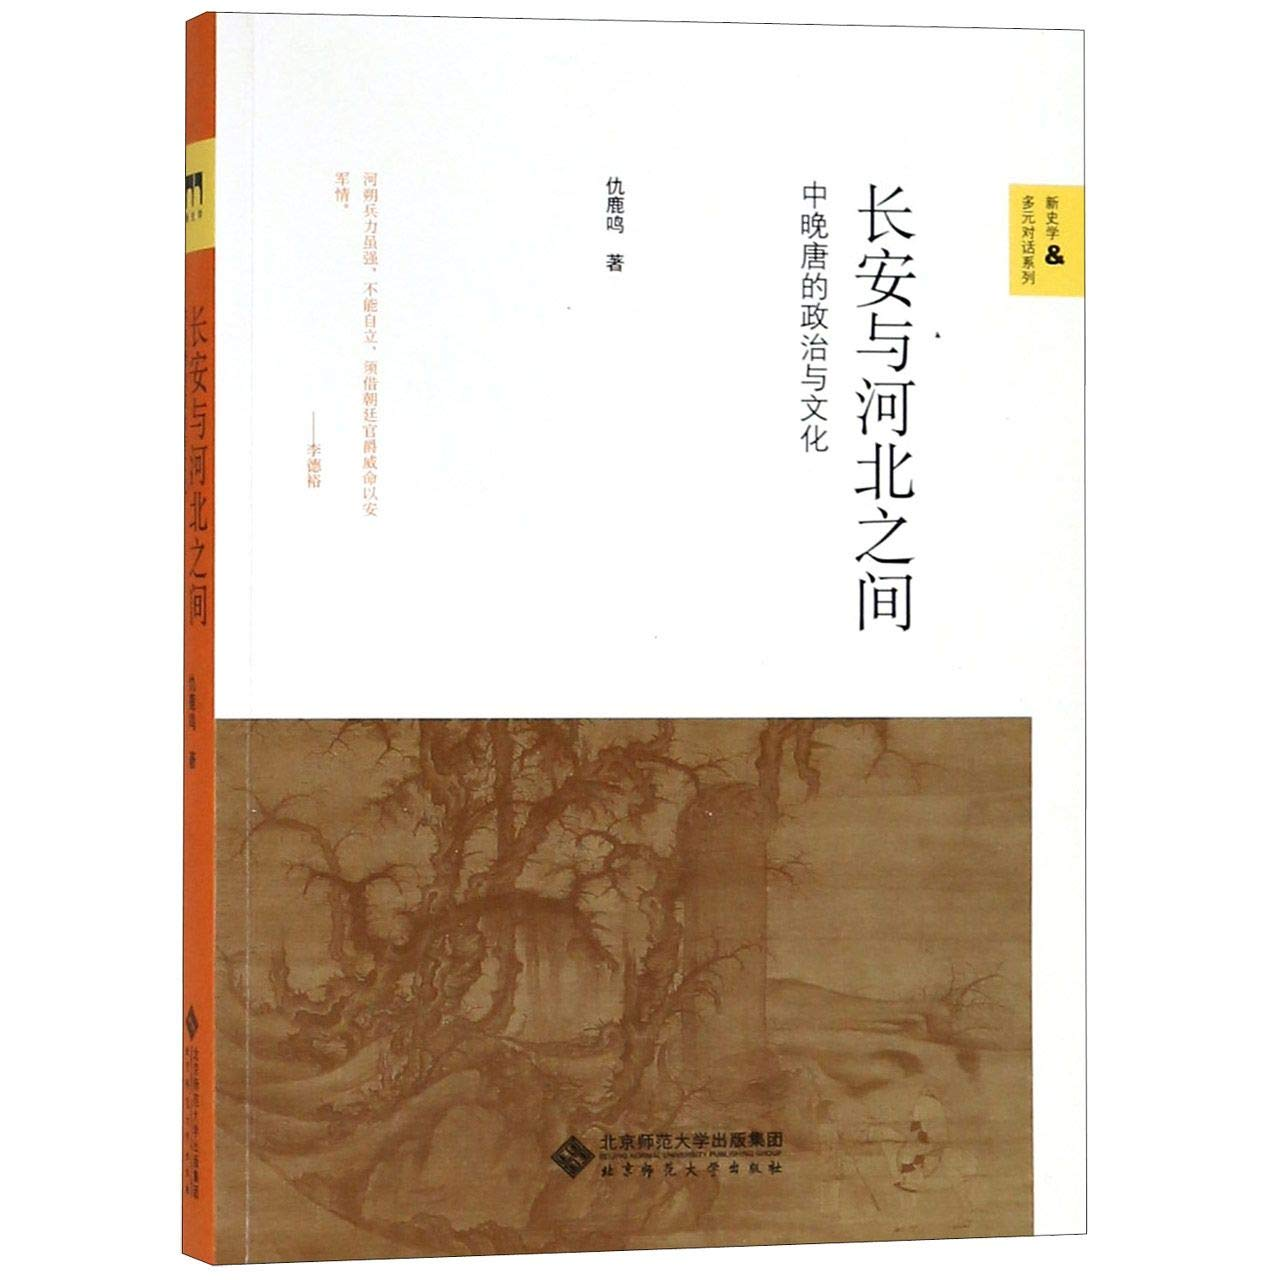 Multi-dialogue Series Between Chang'an And Hebei (Politics And Culture In The Middle And Late Tang Dynasty)/New History